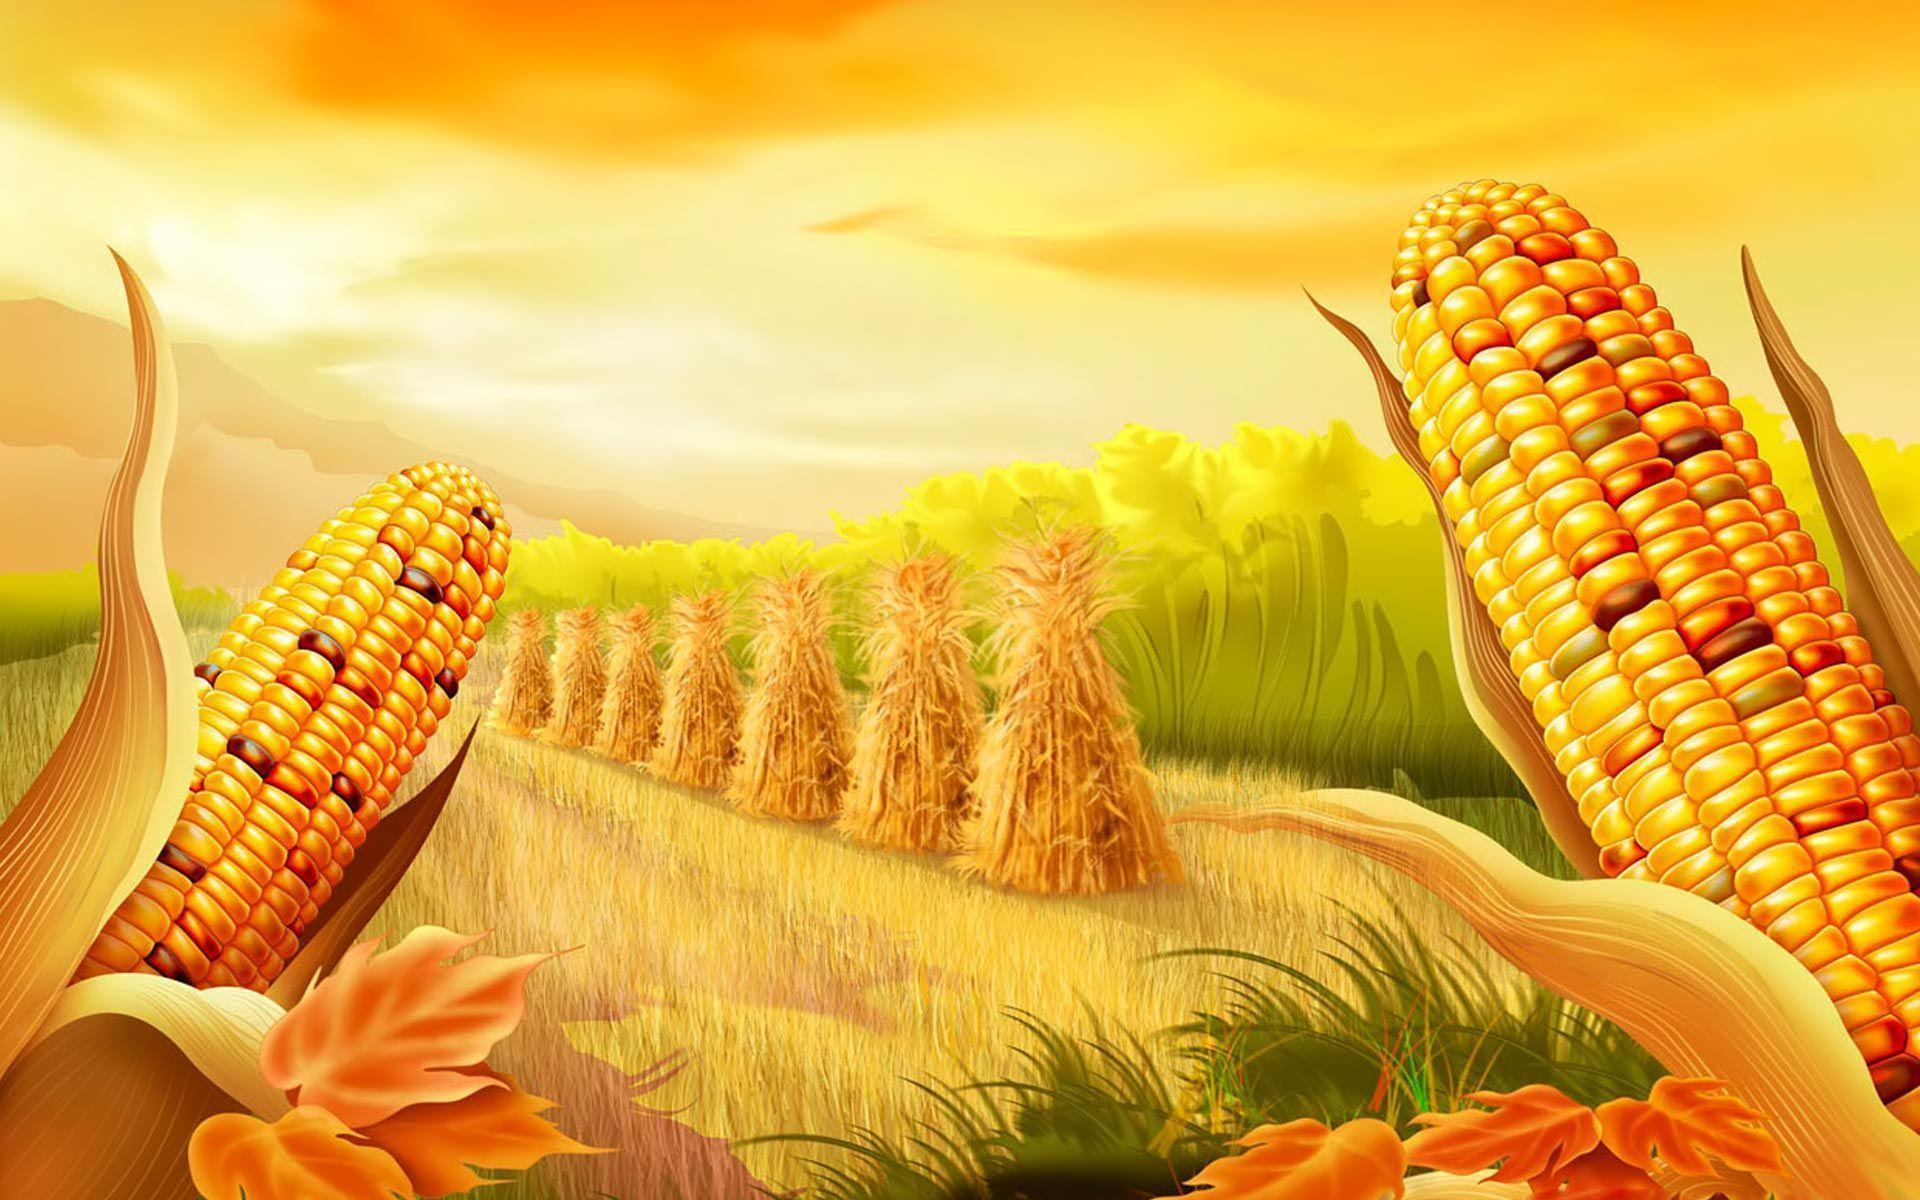 Thanksgiving Wallpaper Backgrounds Free - Wallpaper Cave